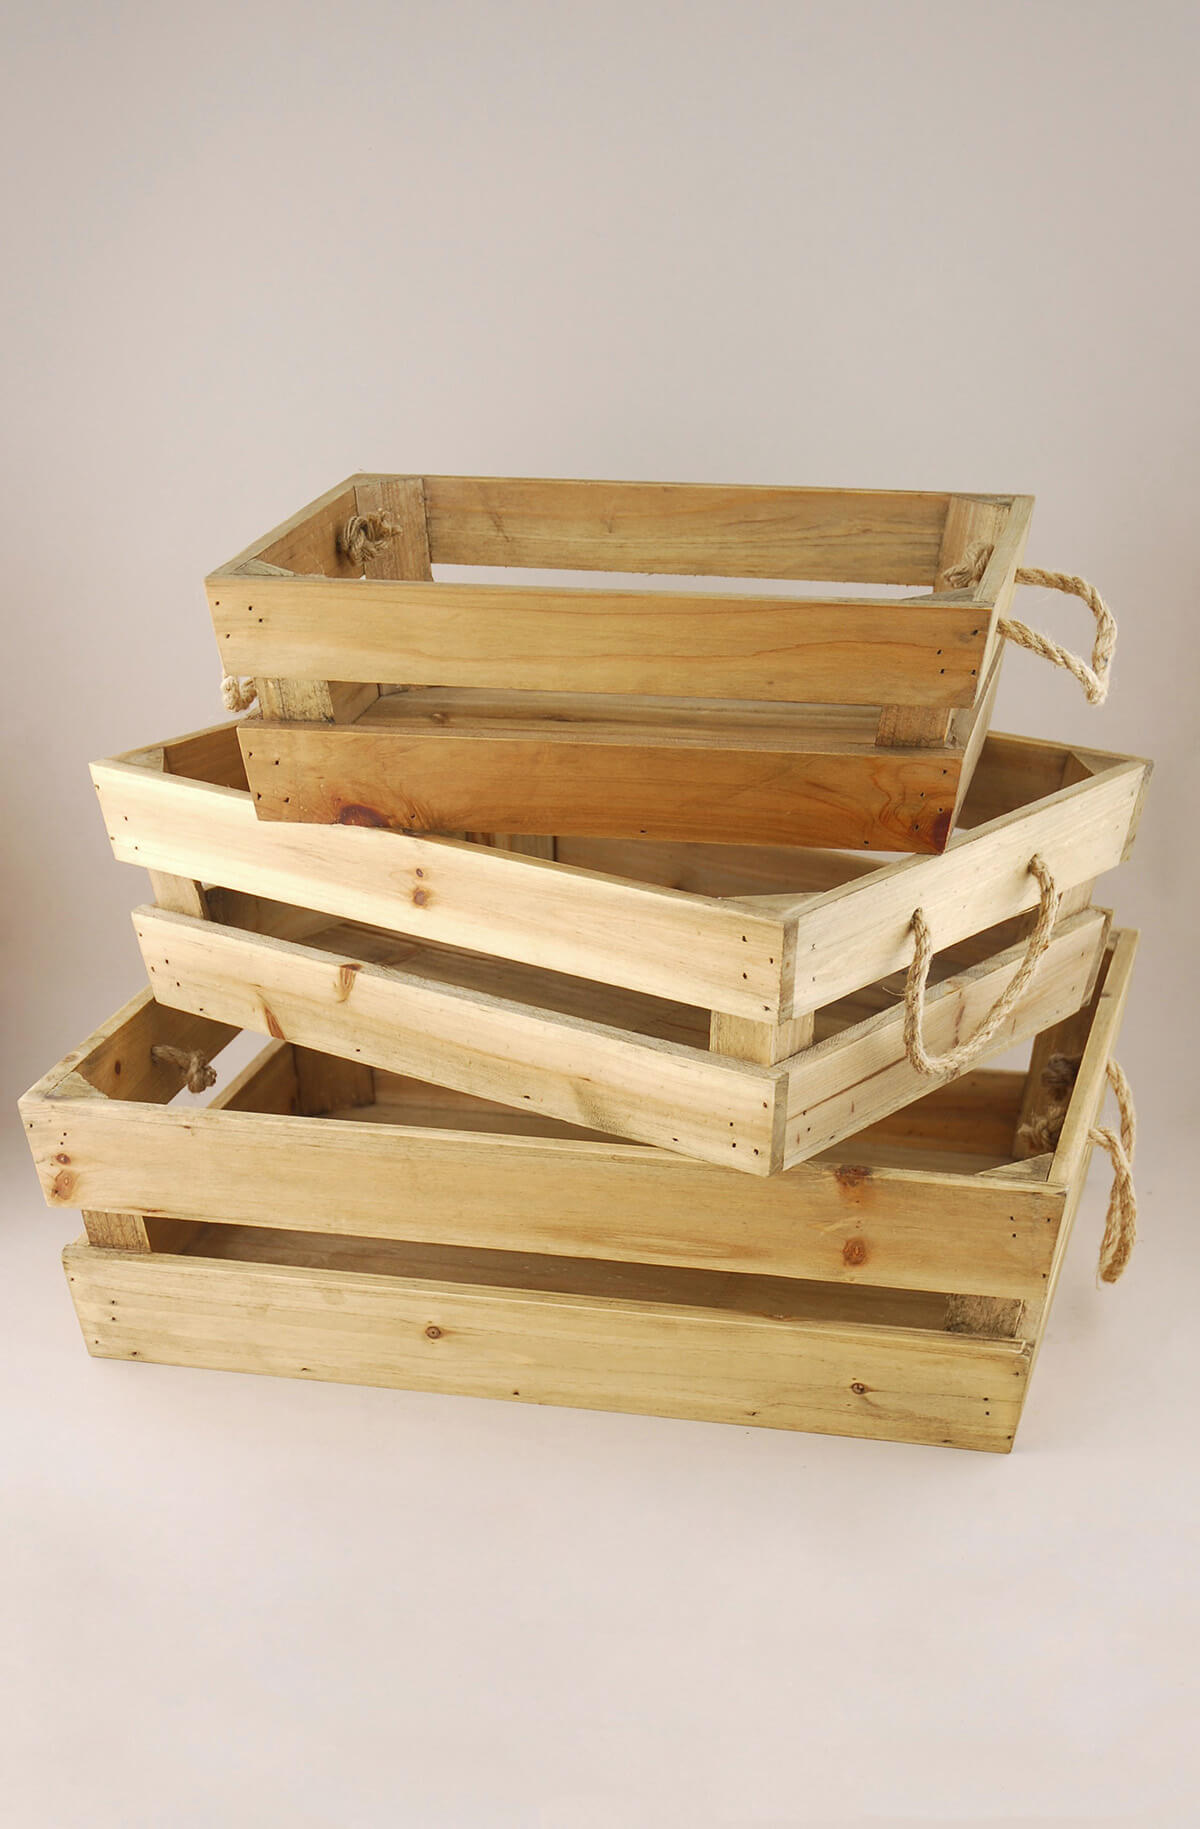 Wooden Crate With Handles Crates Bins Trays